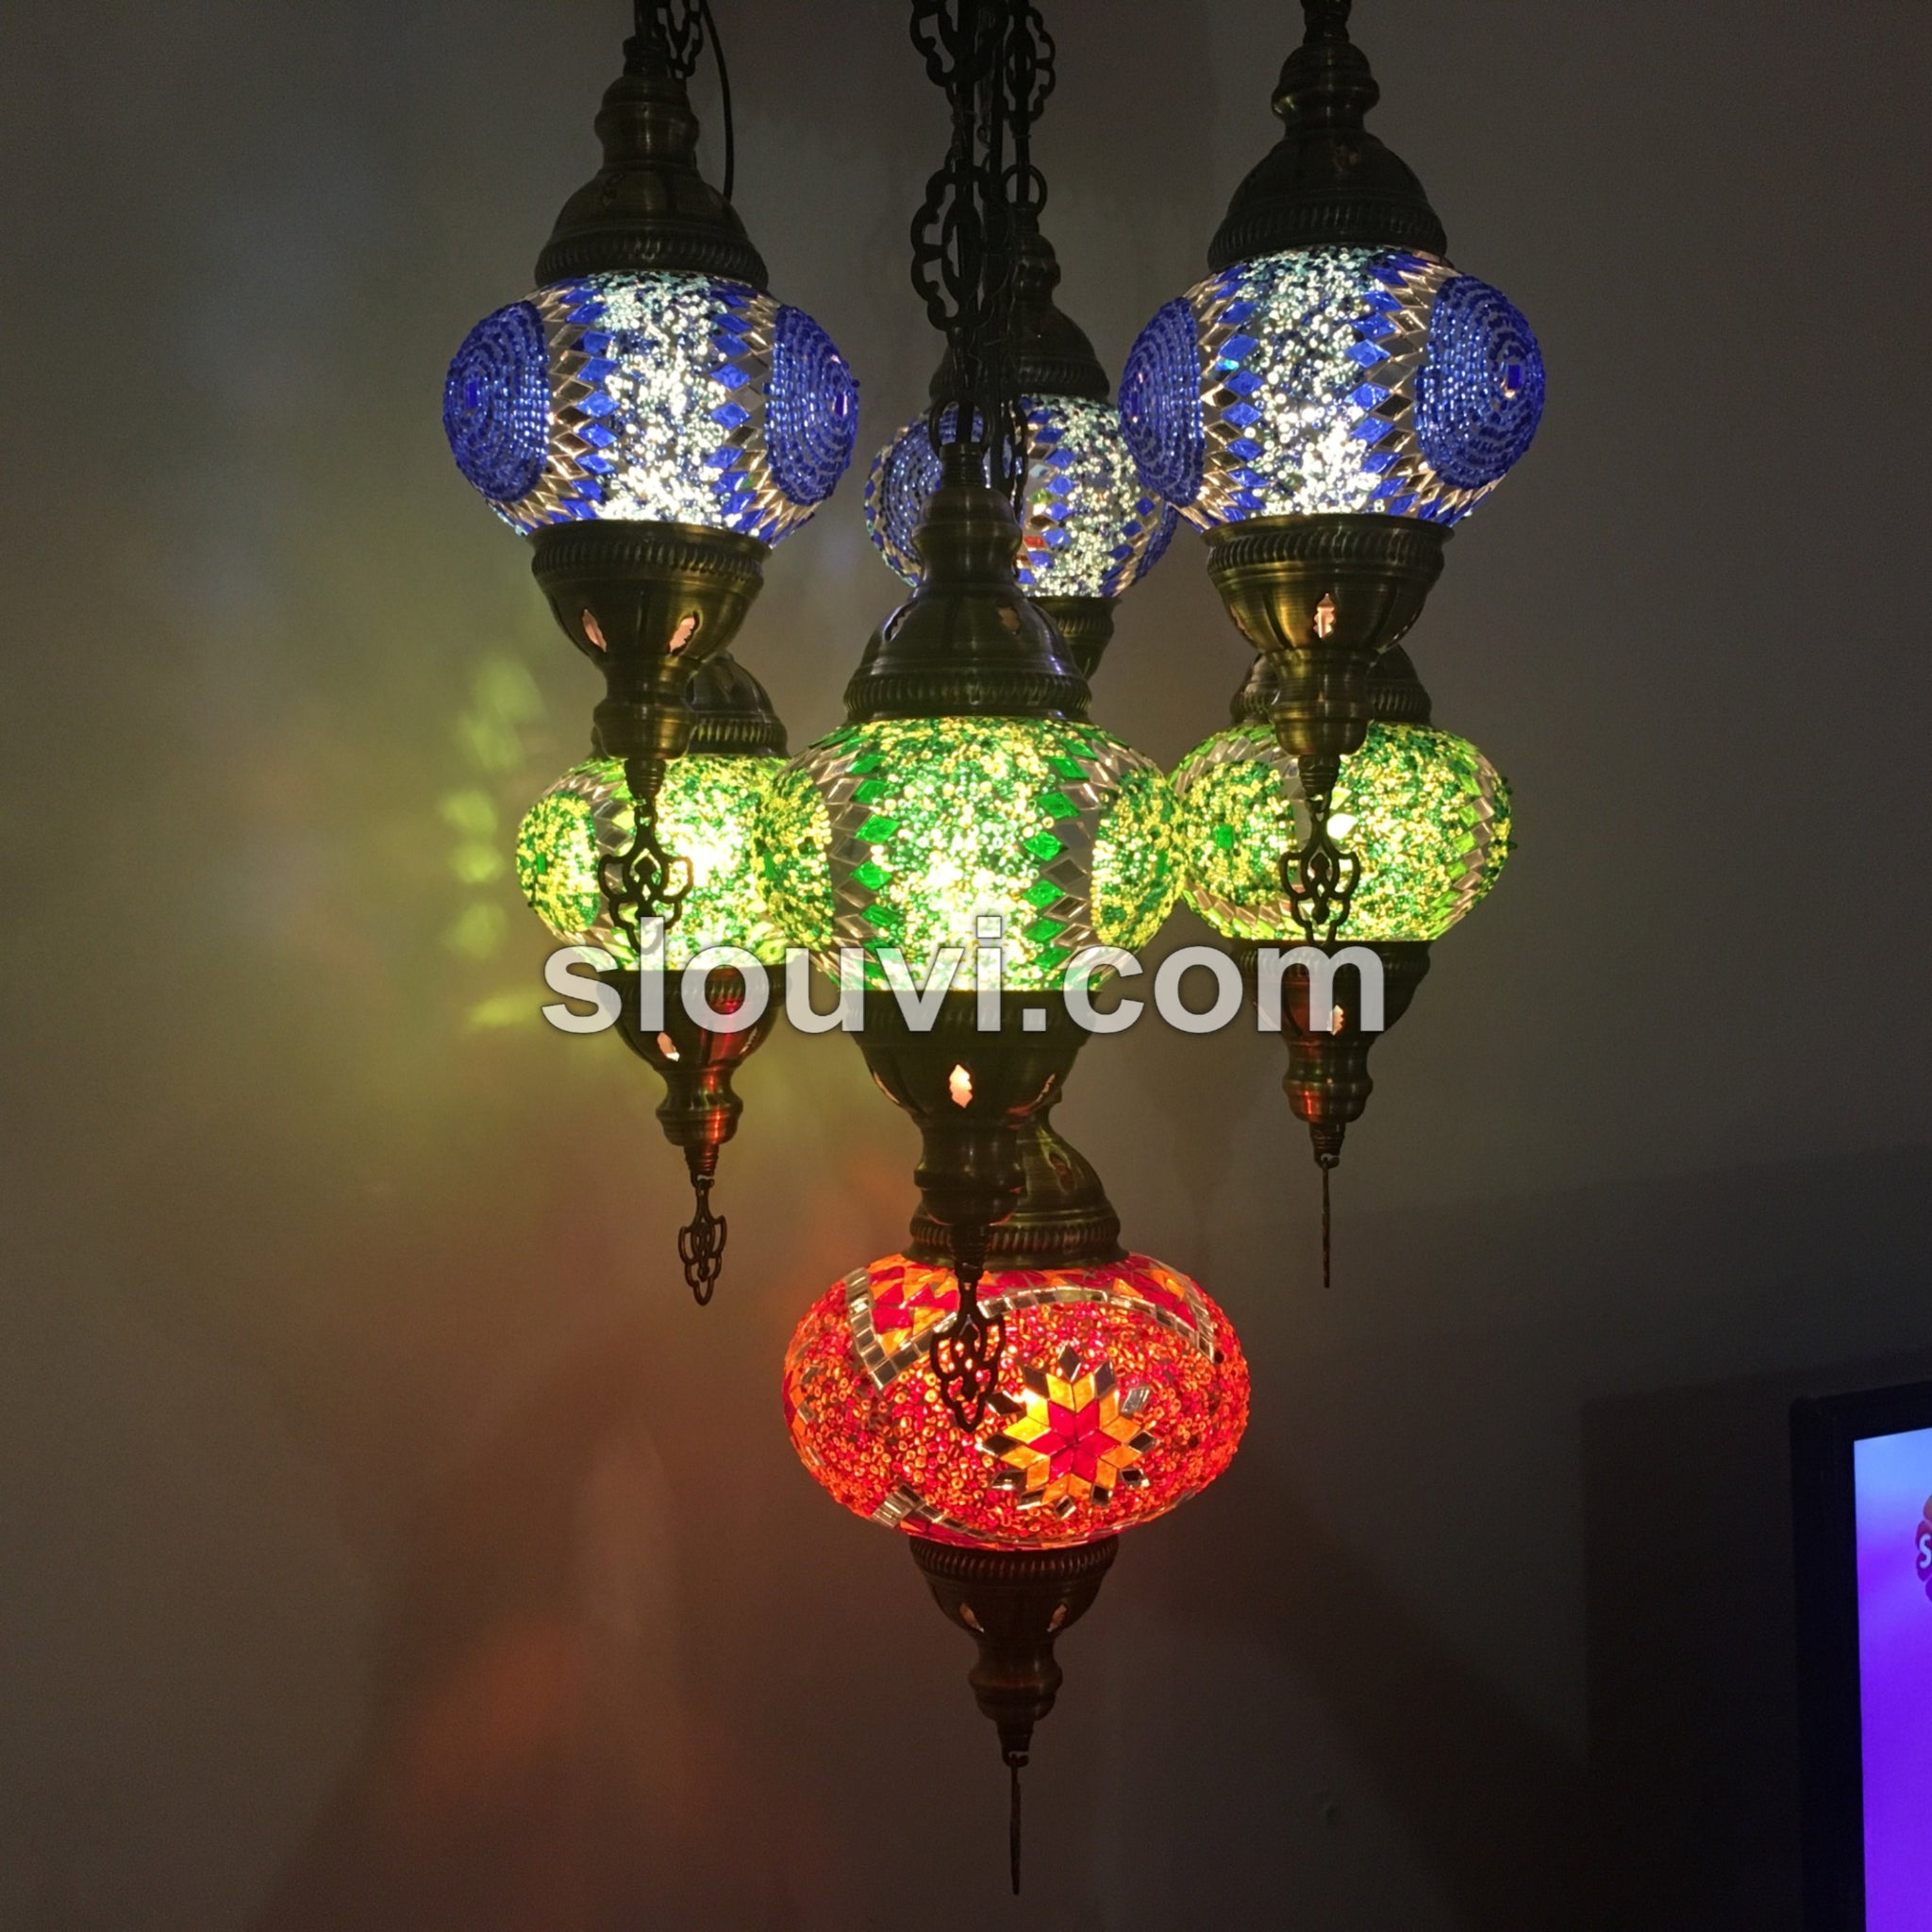 7 ball sultan turkish mosaic chandelier turkishlights 7 ball sultan turkish mosaic chandelier aloadofball Images